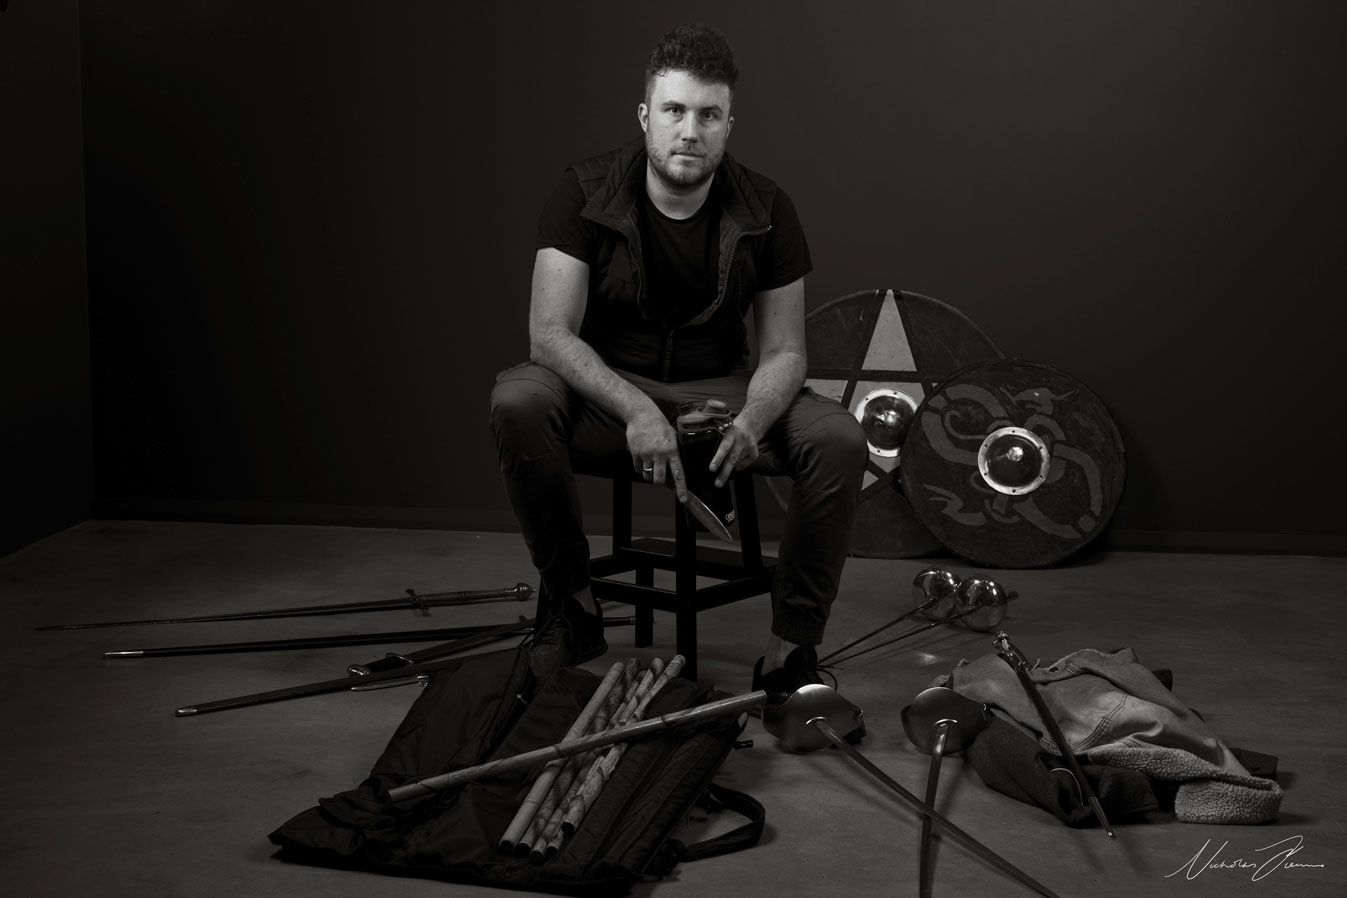 Tim Dashwood, Theatre Fight Director and Actor, surrounded by battle equipment